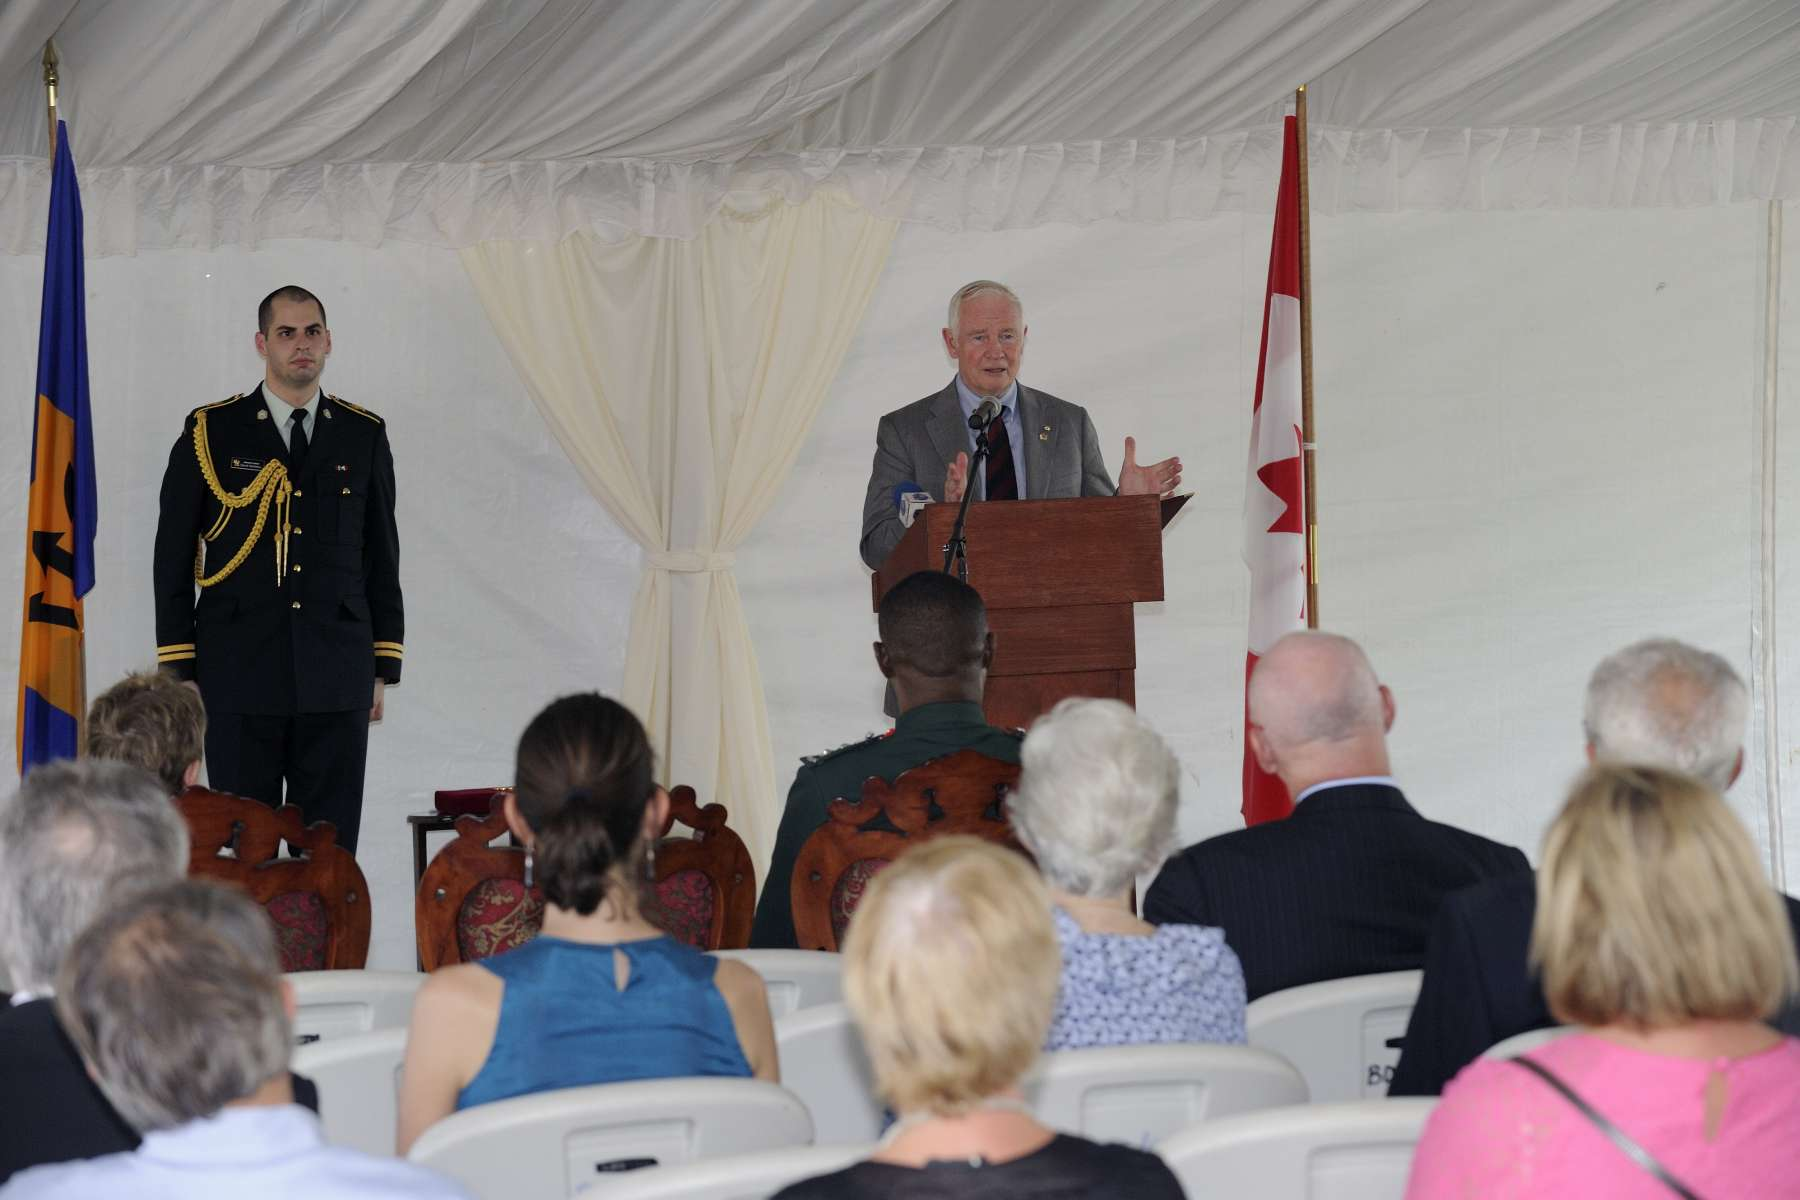 The Governor General delivered remarks on the long historical ties between Canada and Barbados and on Her Majesty Queen Elizabeth II's Diamond Jubilee celebrations.